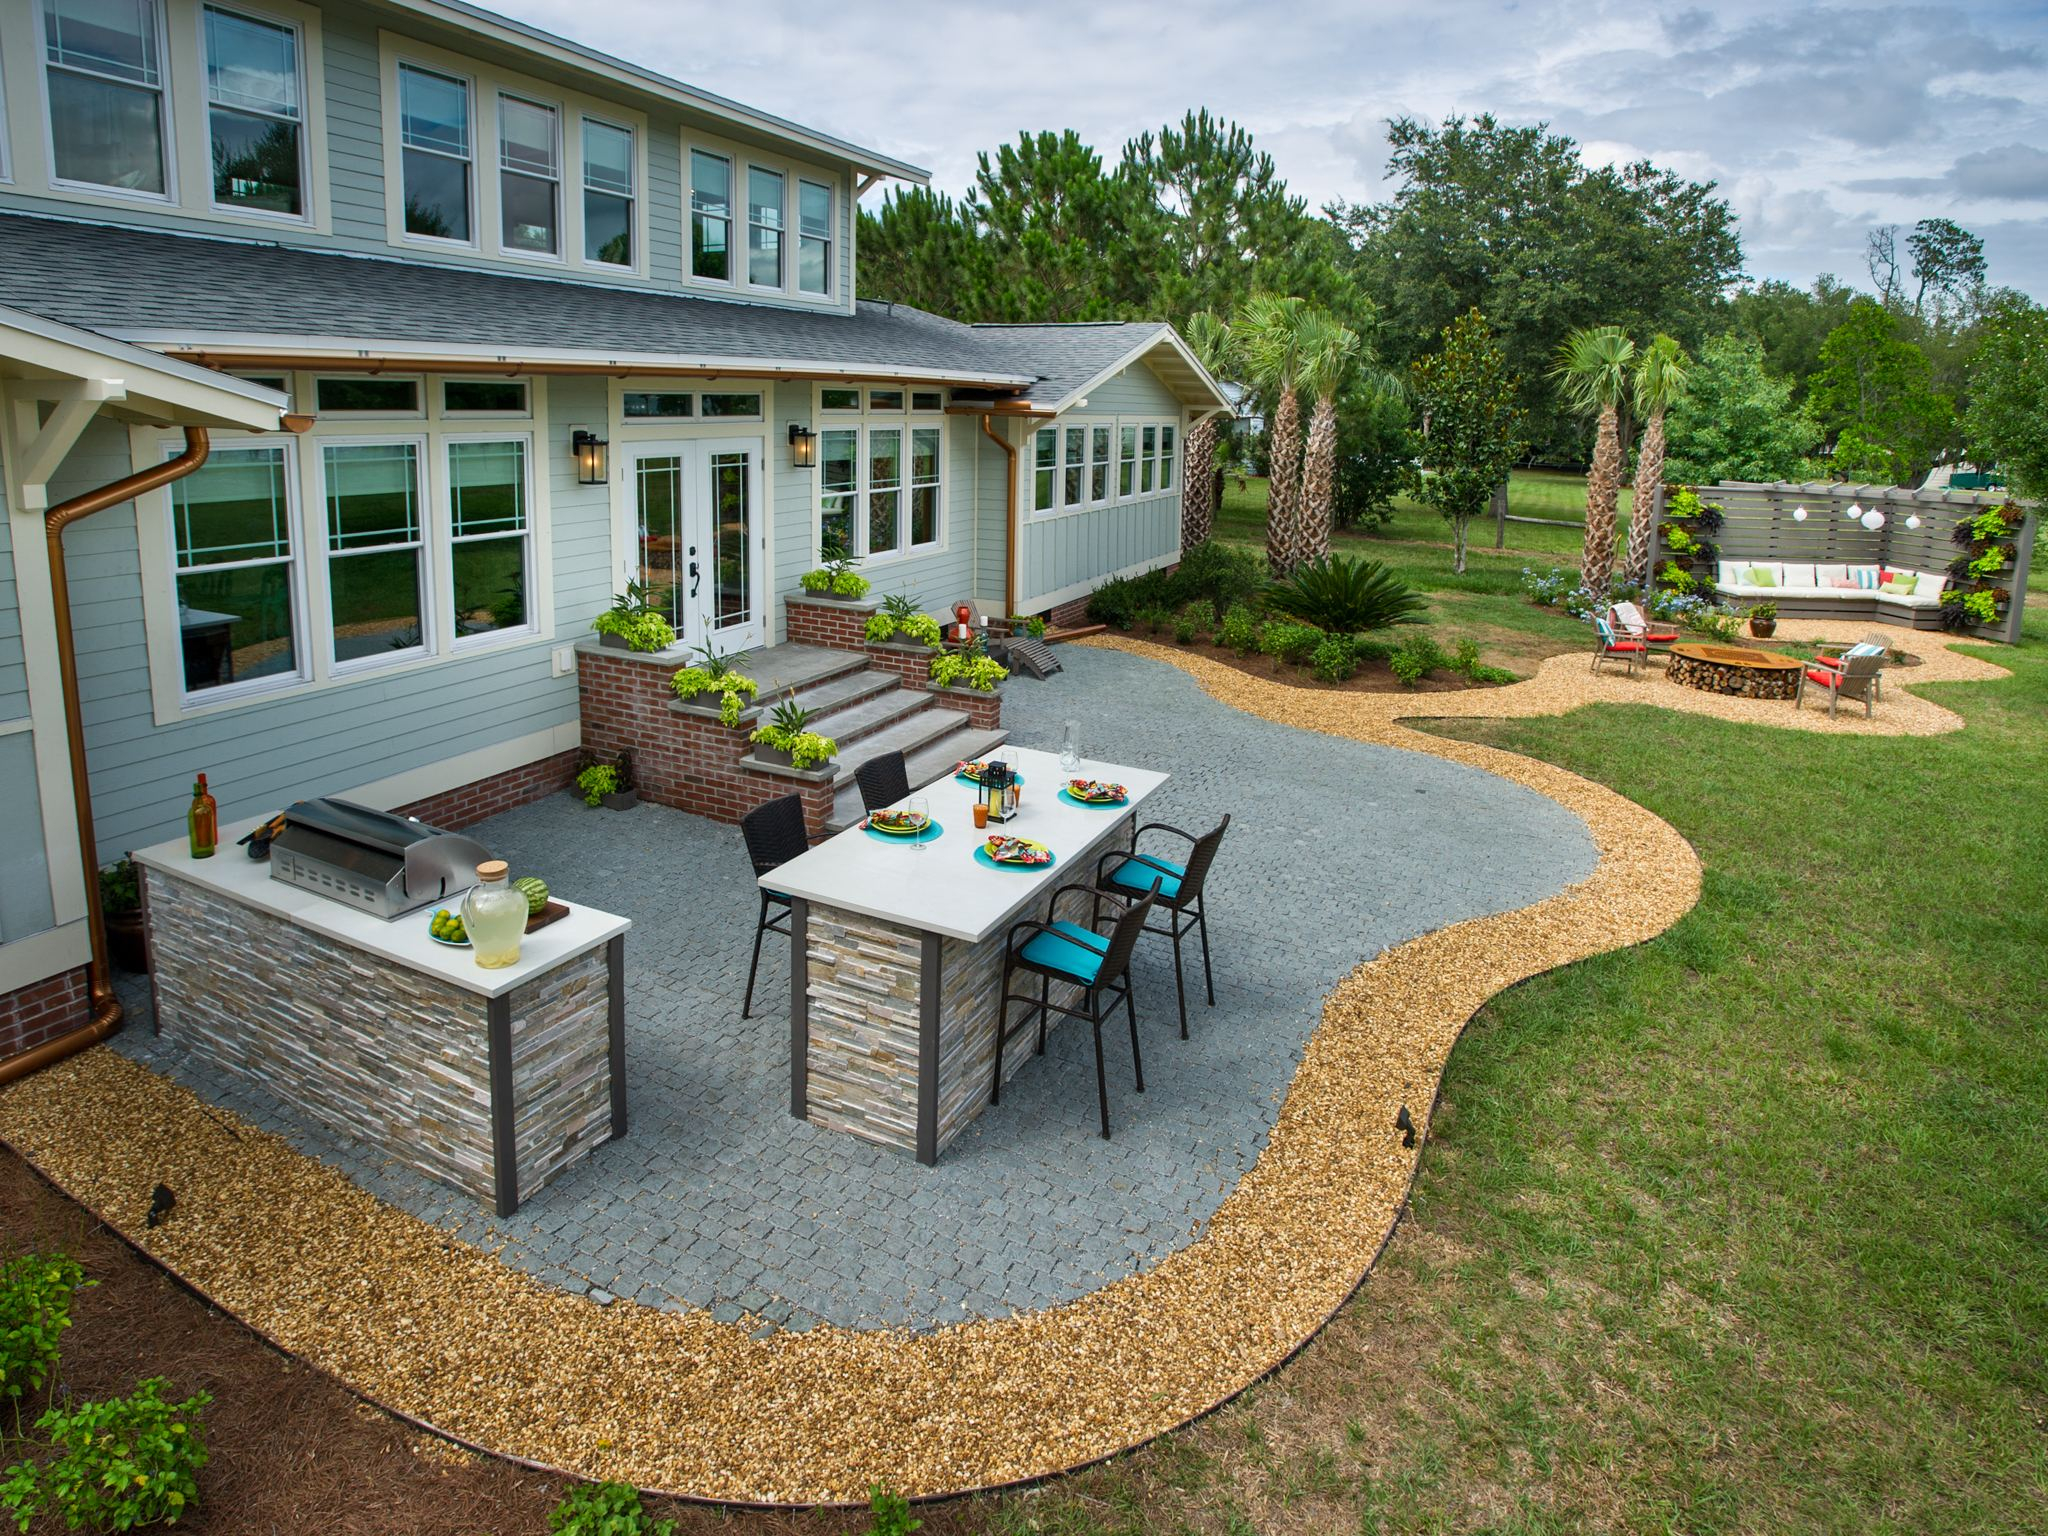 Interior Crushed Rock Patio Ideas Small Gravel Diy Stone Base throughout size 2048 X 1536